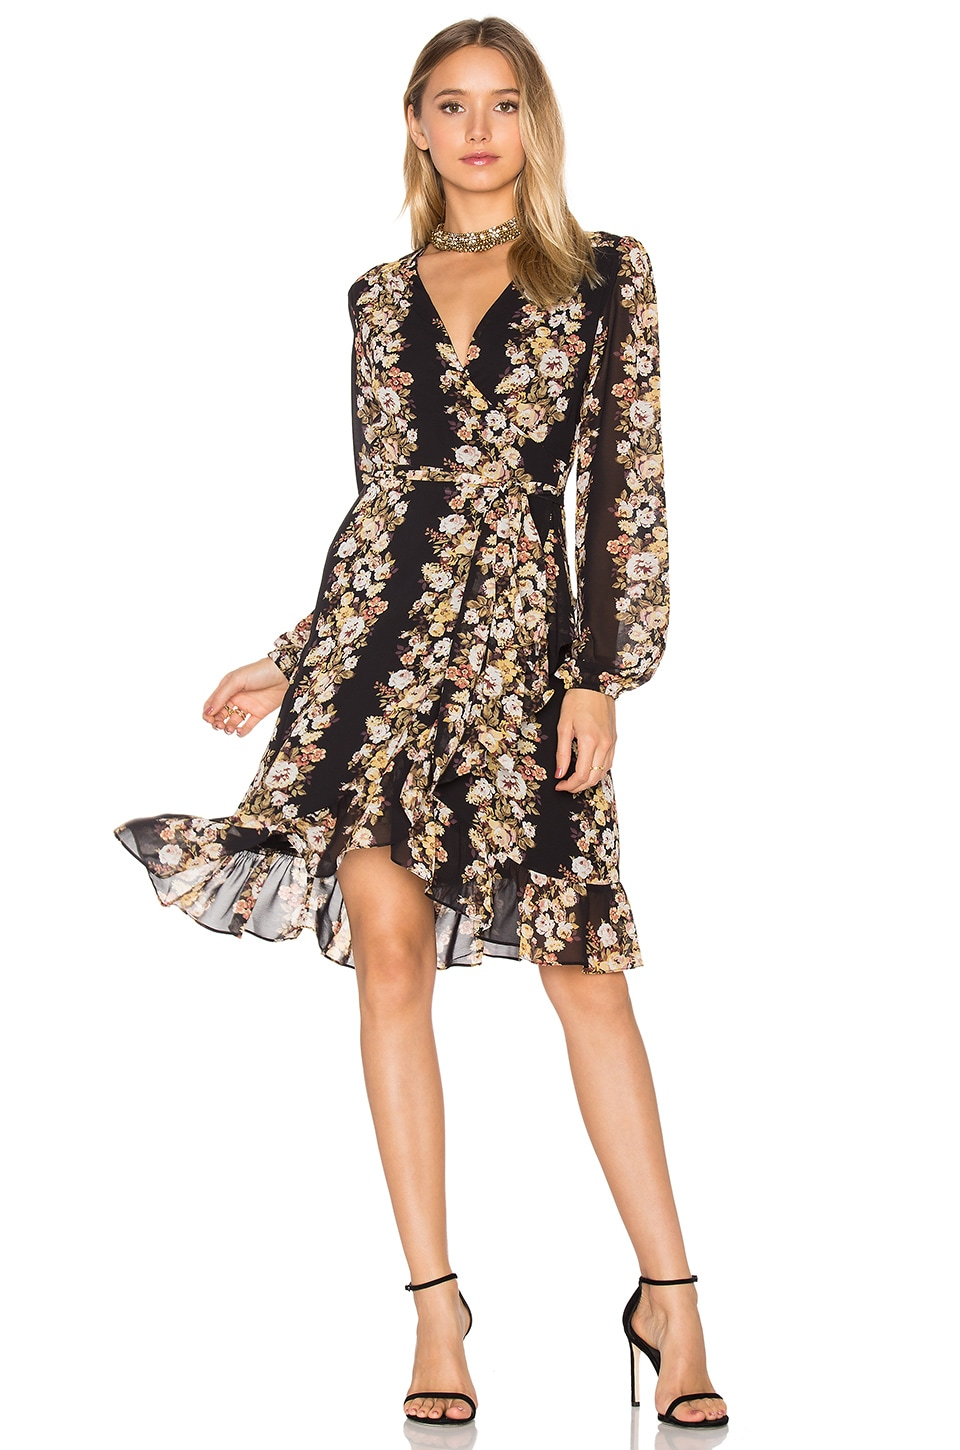 WAYF Only You Wrap Dress in Black Floral